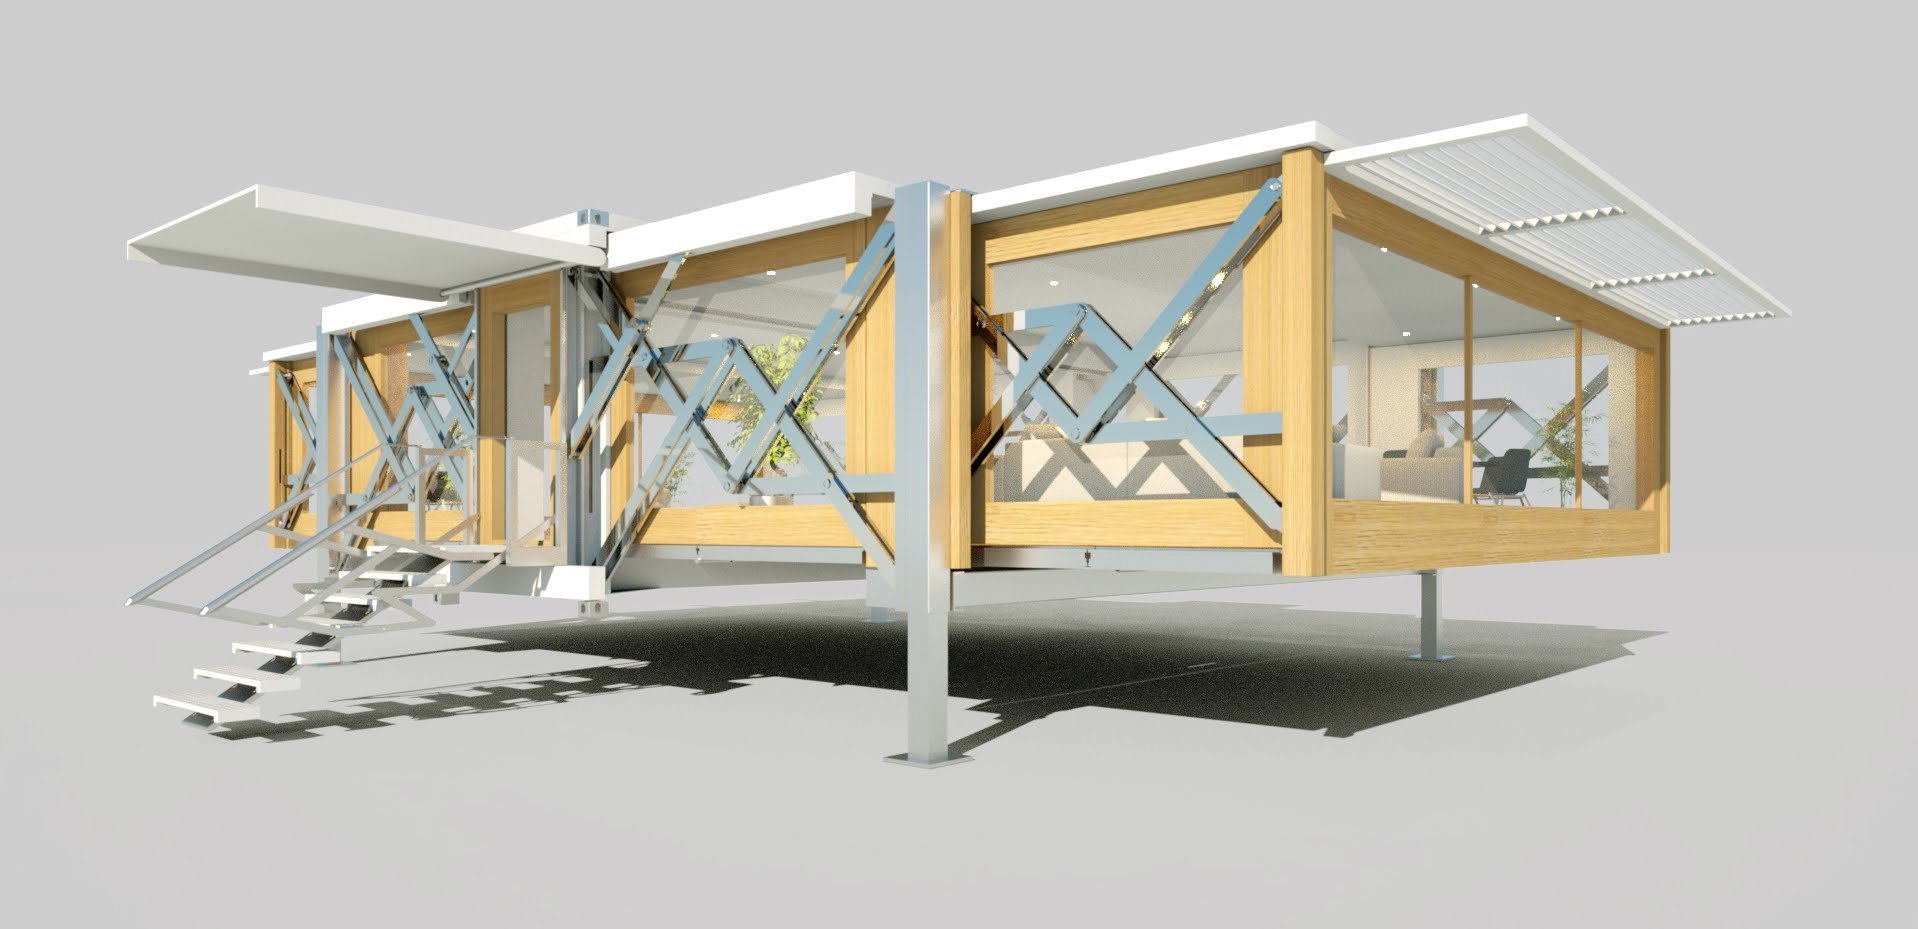 foldable house ready in 10 minutes1